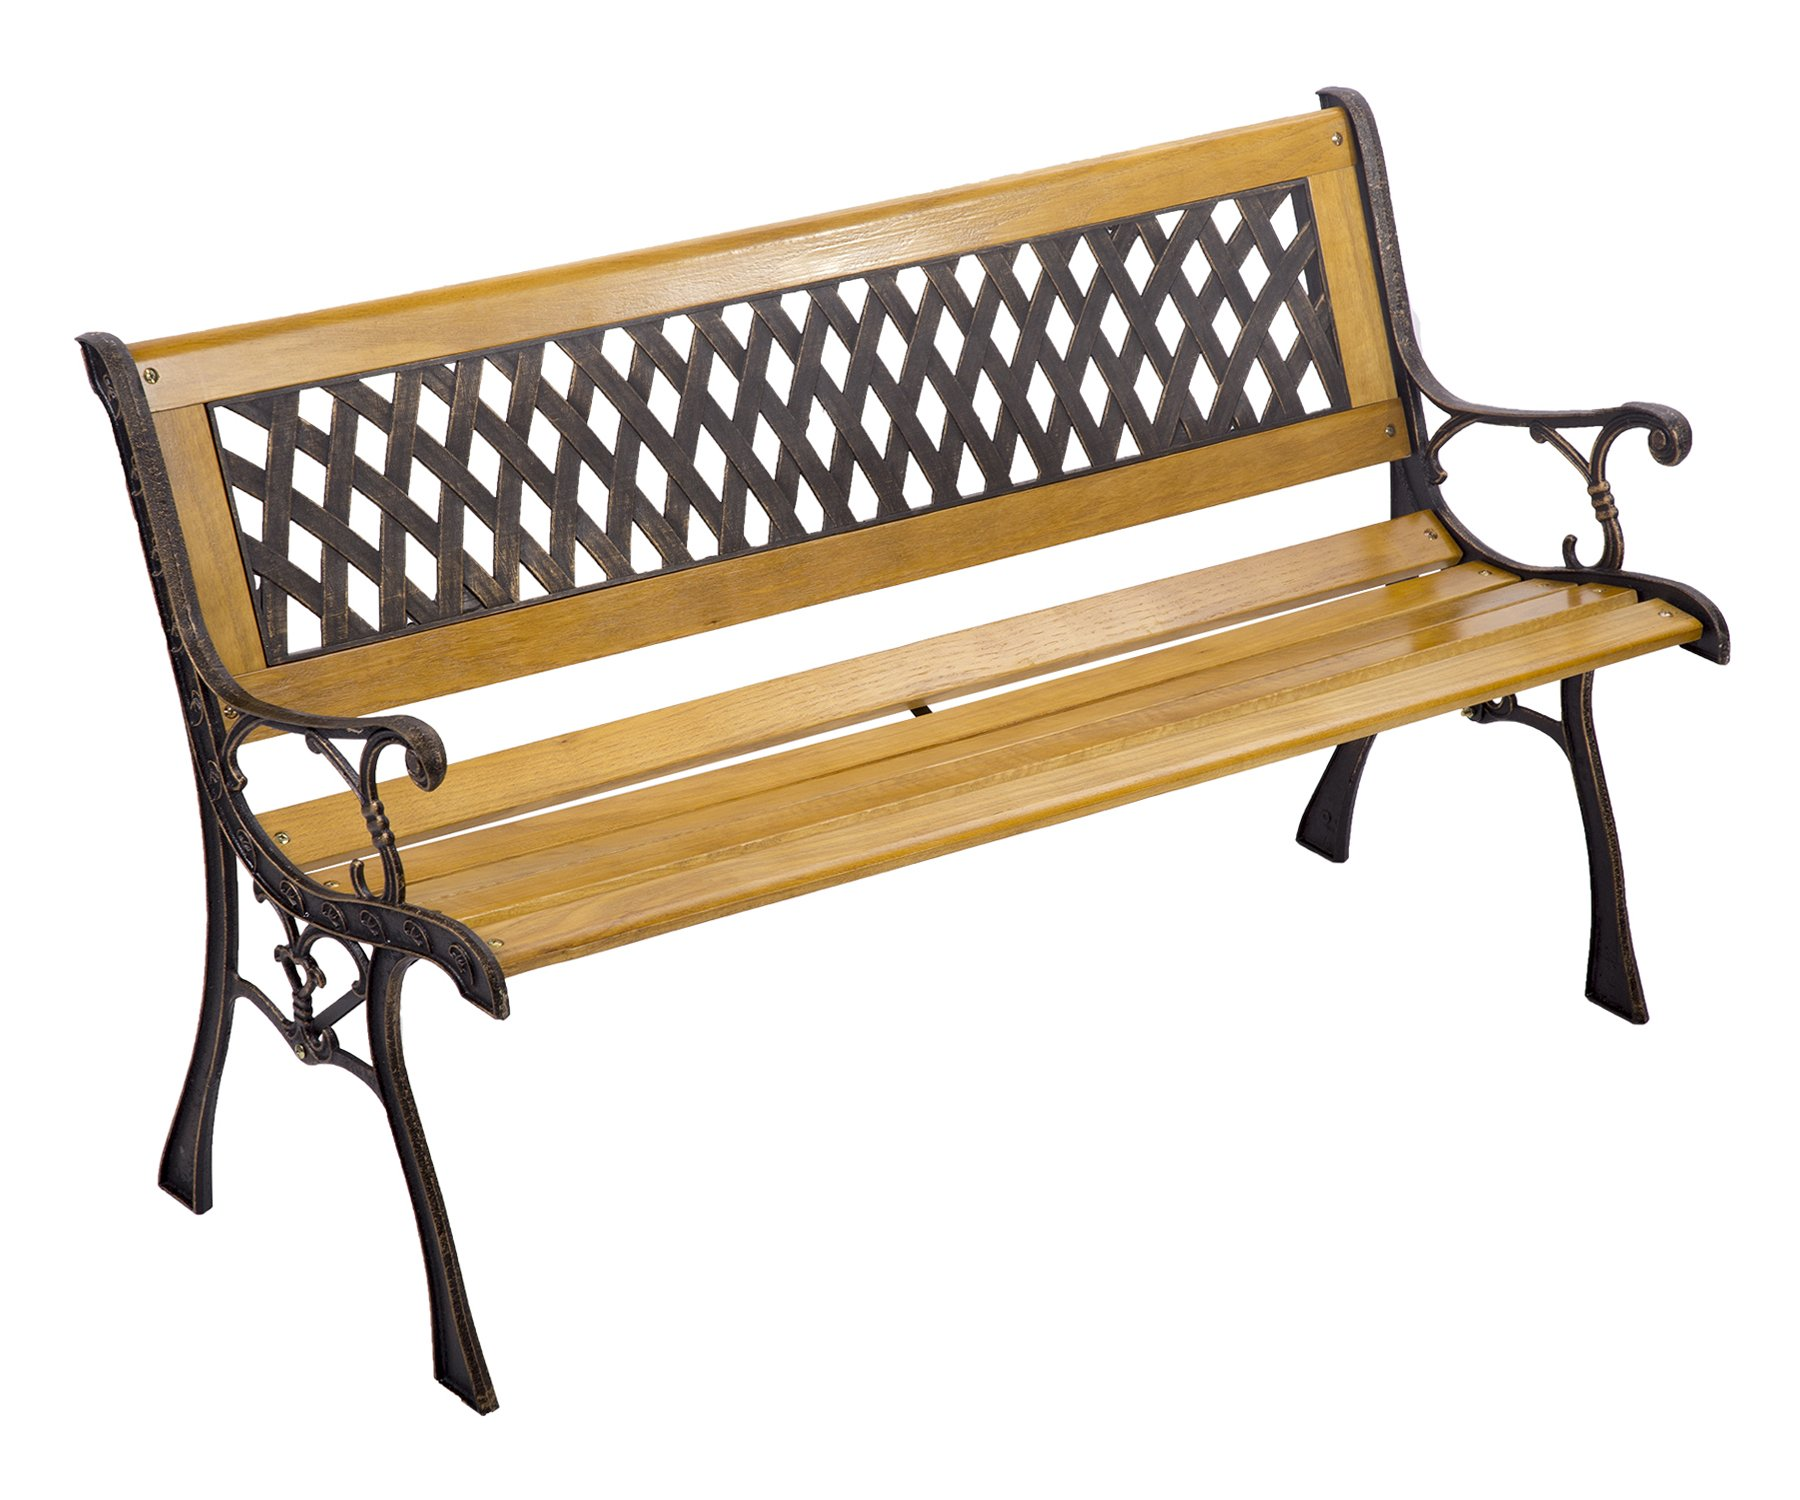 Garden Bench Patio Porch Chair Deck Hardwood Cast Iron Love Seat Best Massage by BMS (Image #1)